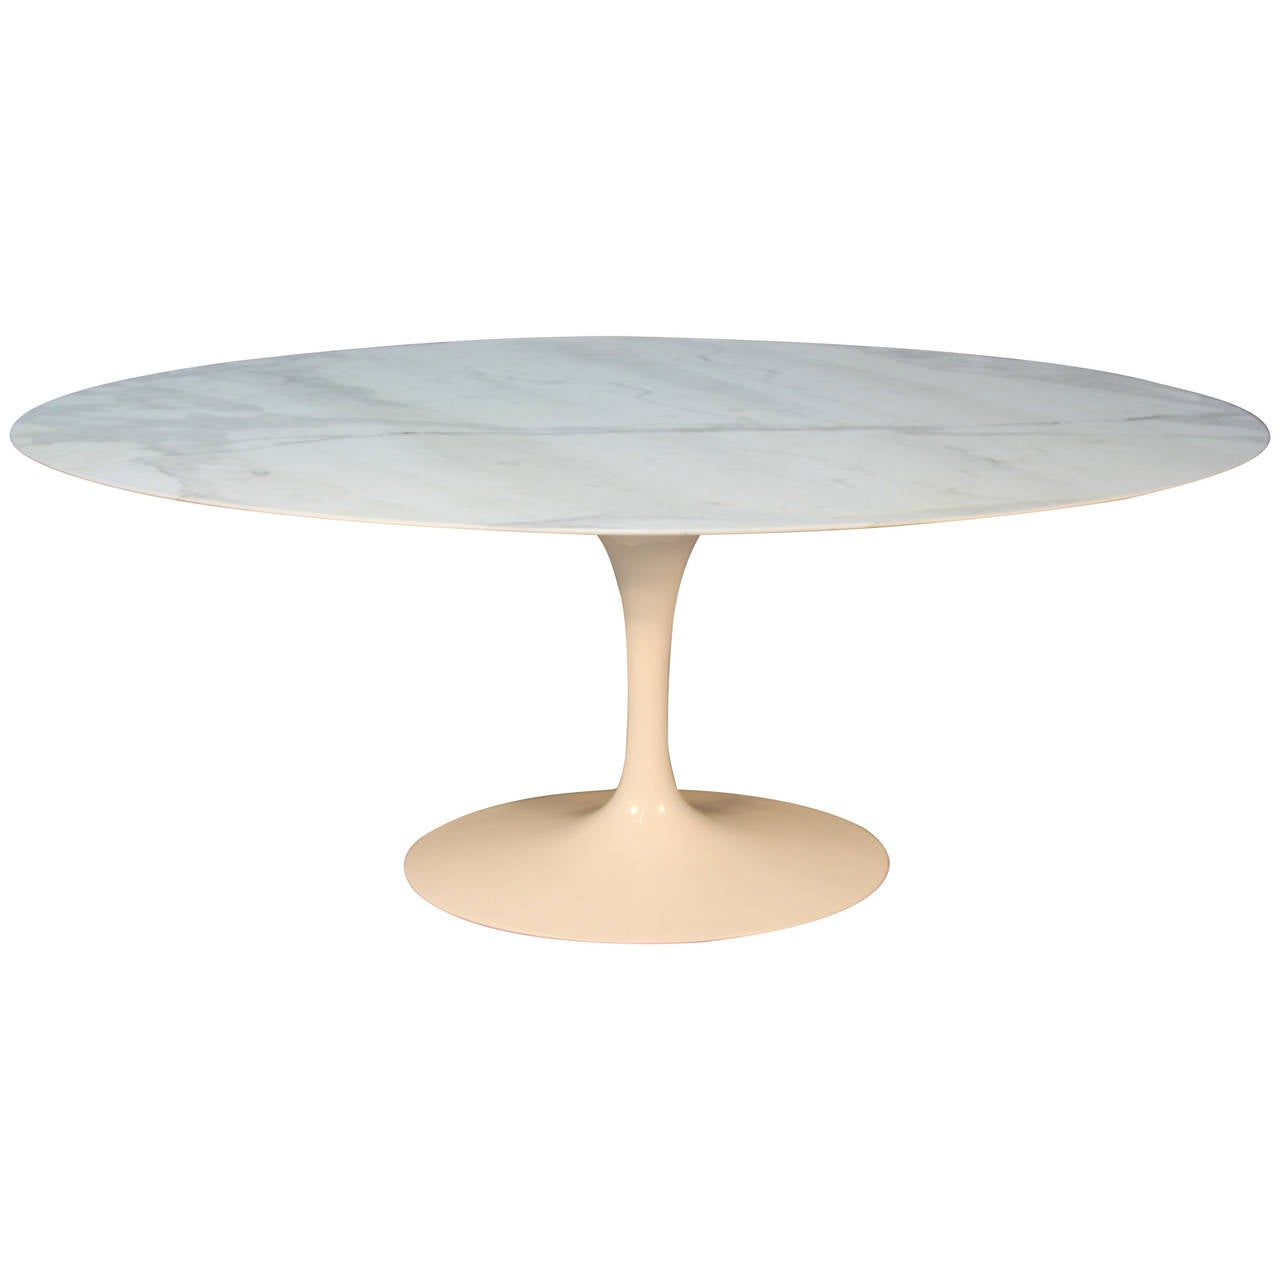 Saarinen Oval Marble Top Dining Table at 1stdibs : 3144142l from www.1stdibs.com size 1280 x 1280 jpeg 28kB